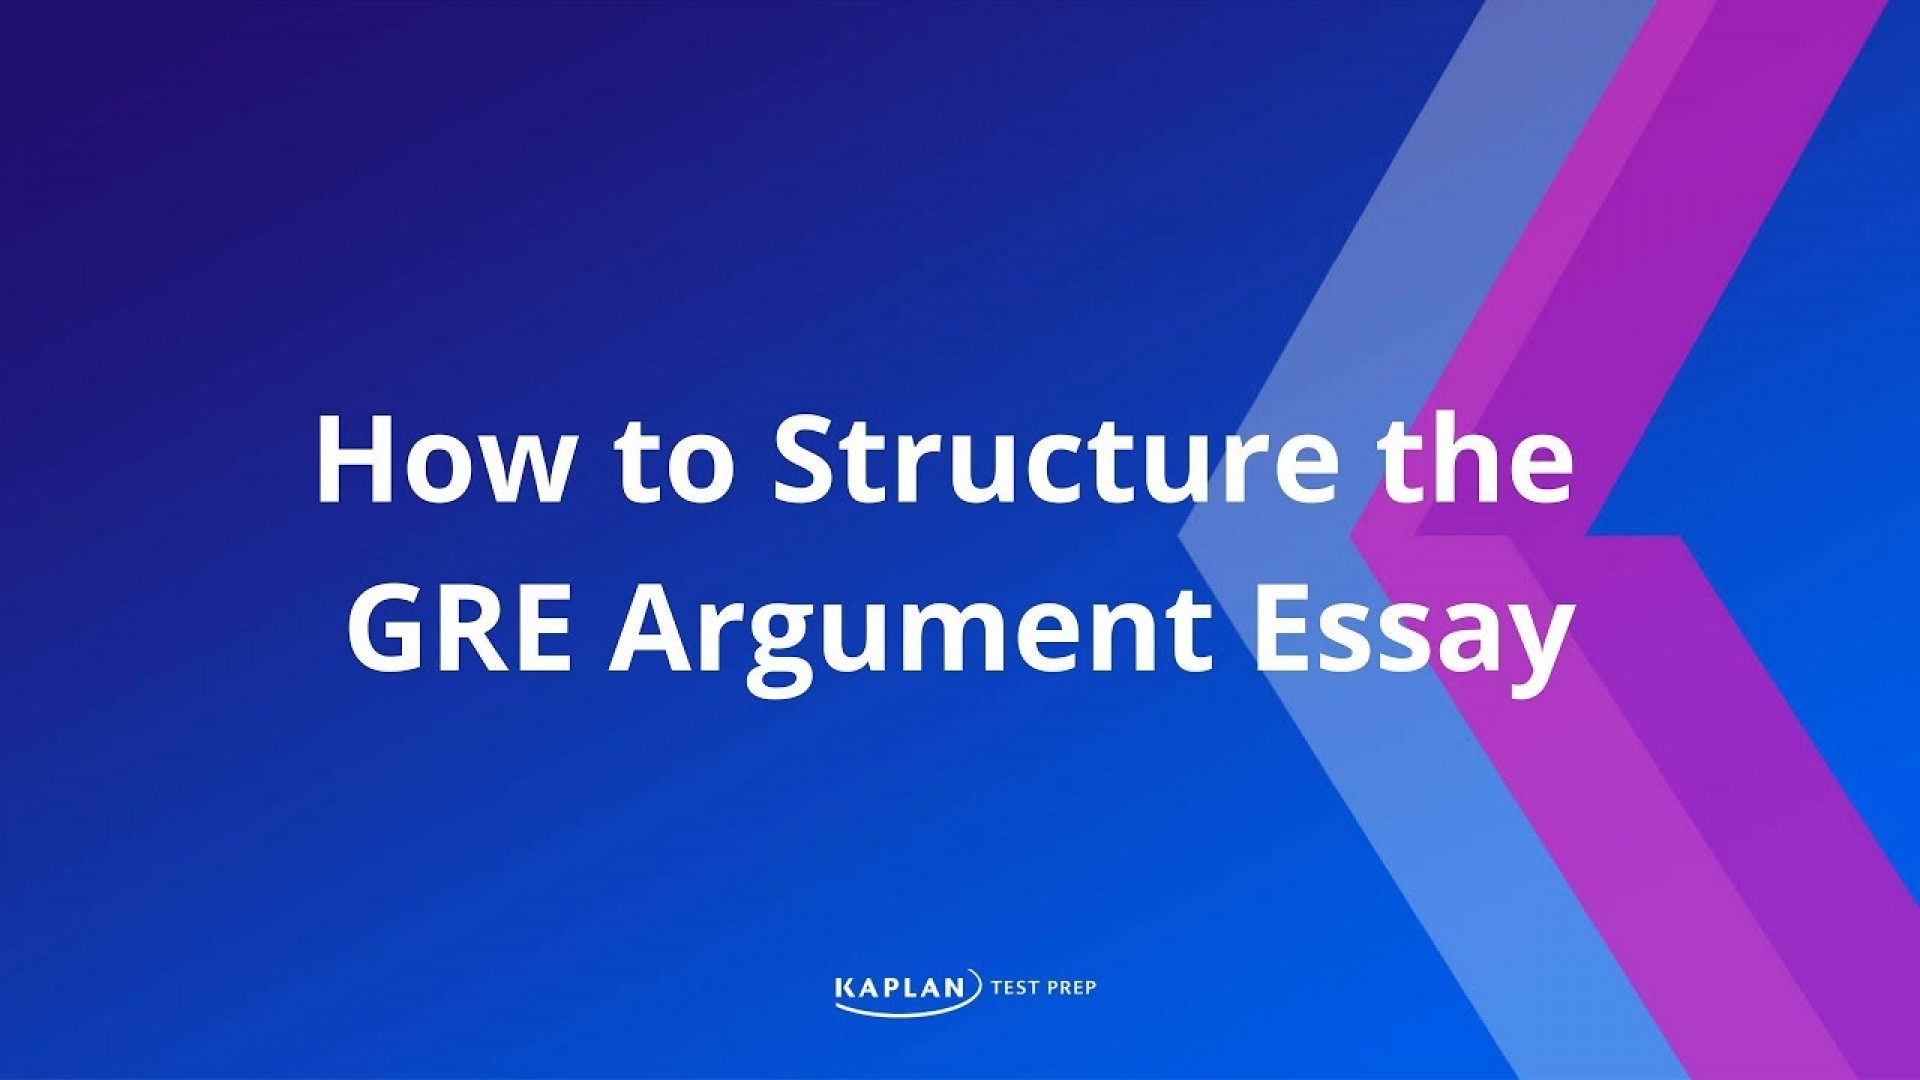 008 Maxresdefault Gre Argument Essay Fearsome Youtube Writing Tips Template Pdf 1920